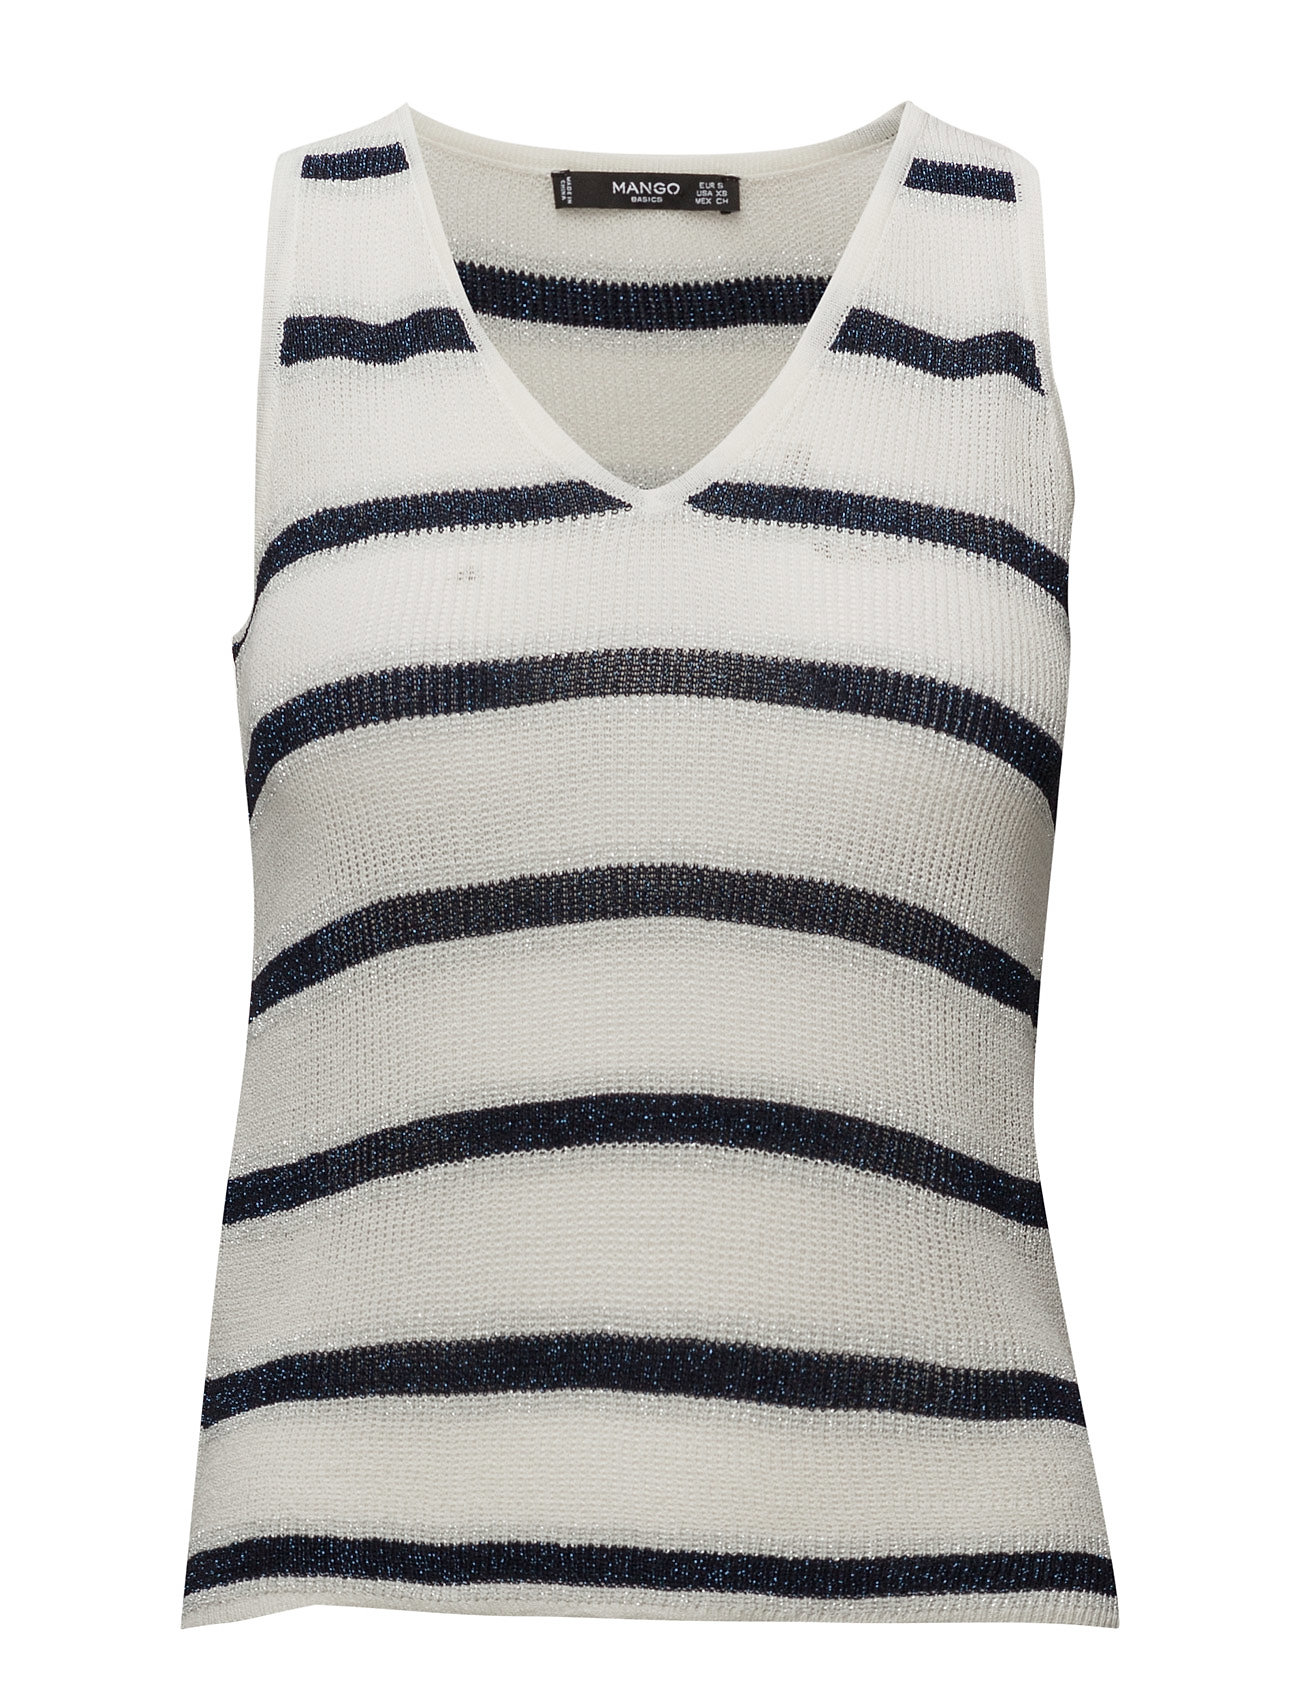 Metallic Striped Top Mango Ærmeløse til Damer i Navy blå